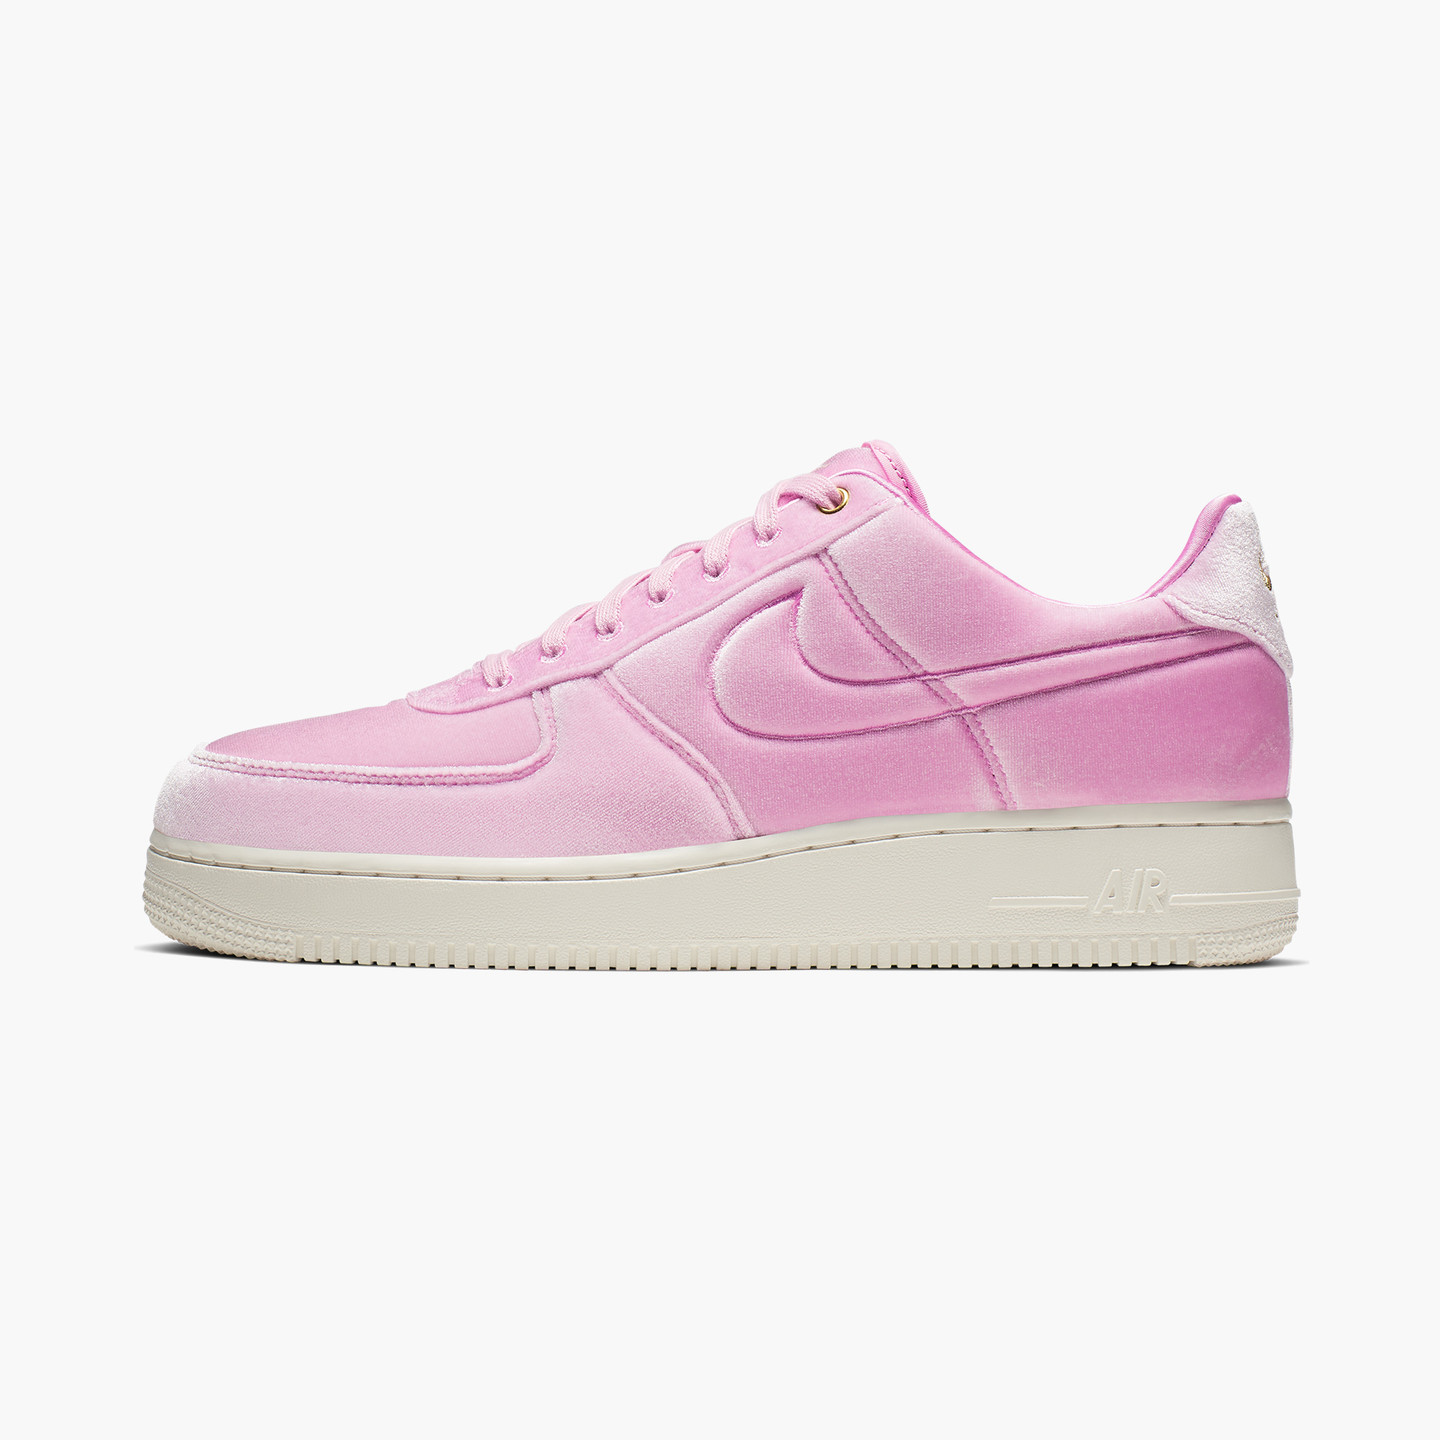 Nike Air Force 1 ´07 Premium 'Pink Velvet' Pink Rise / Sail / Metallic Gold AT4144-600